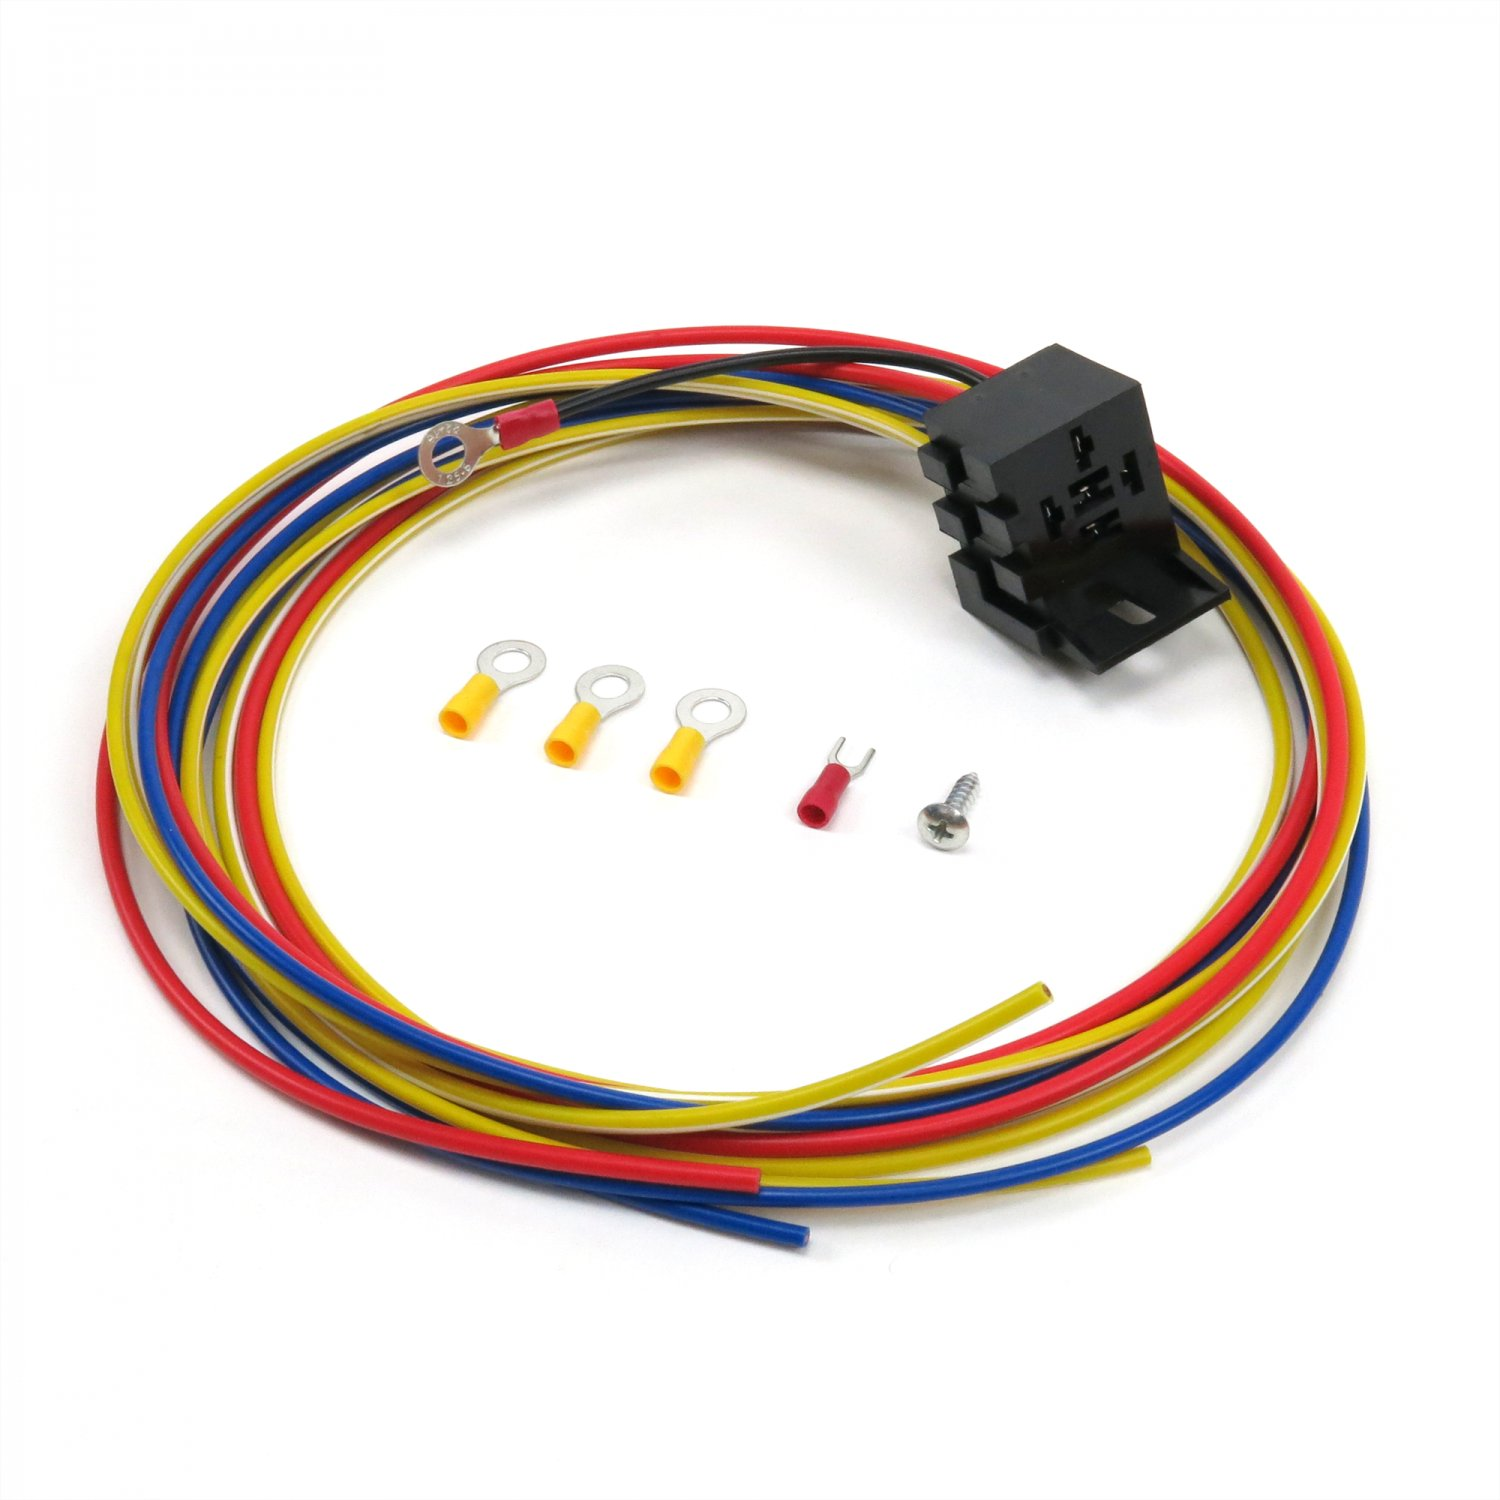 Clean Custom Wiring Harness | Wiring Diagram on powermaster wiring diagrams, mastercraft wiring diagrams, auto meter wiring diagrams, vdo wiring diagrams, accel wiring diagrams, vehicle wiring diagrams, pioneer wiring diagrams, auto rod controls wiring diagrams, mallory wiring diagrams, autoloc wiring diagrams,